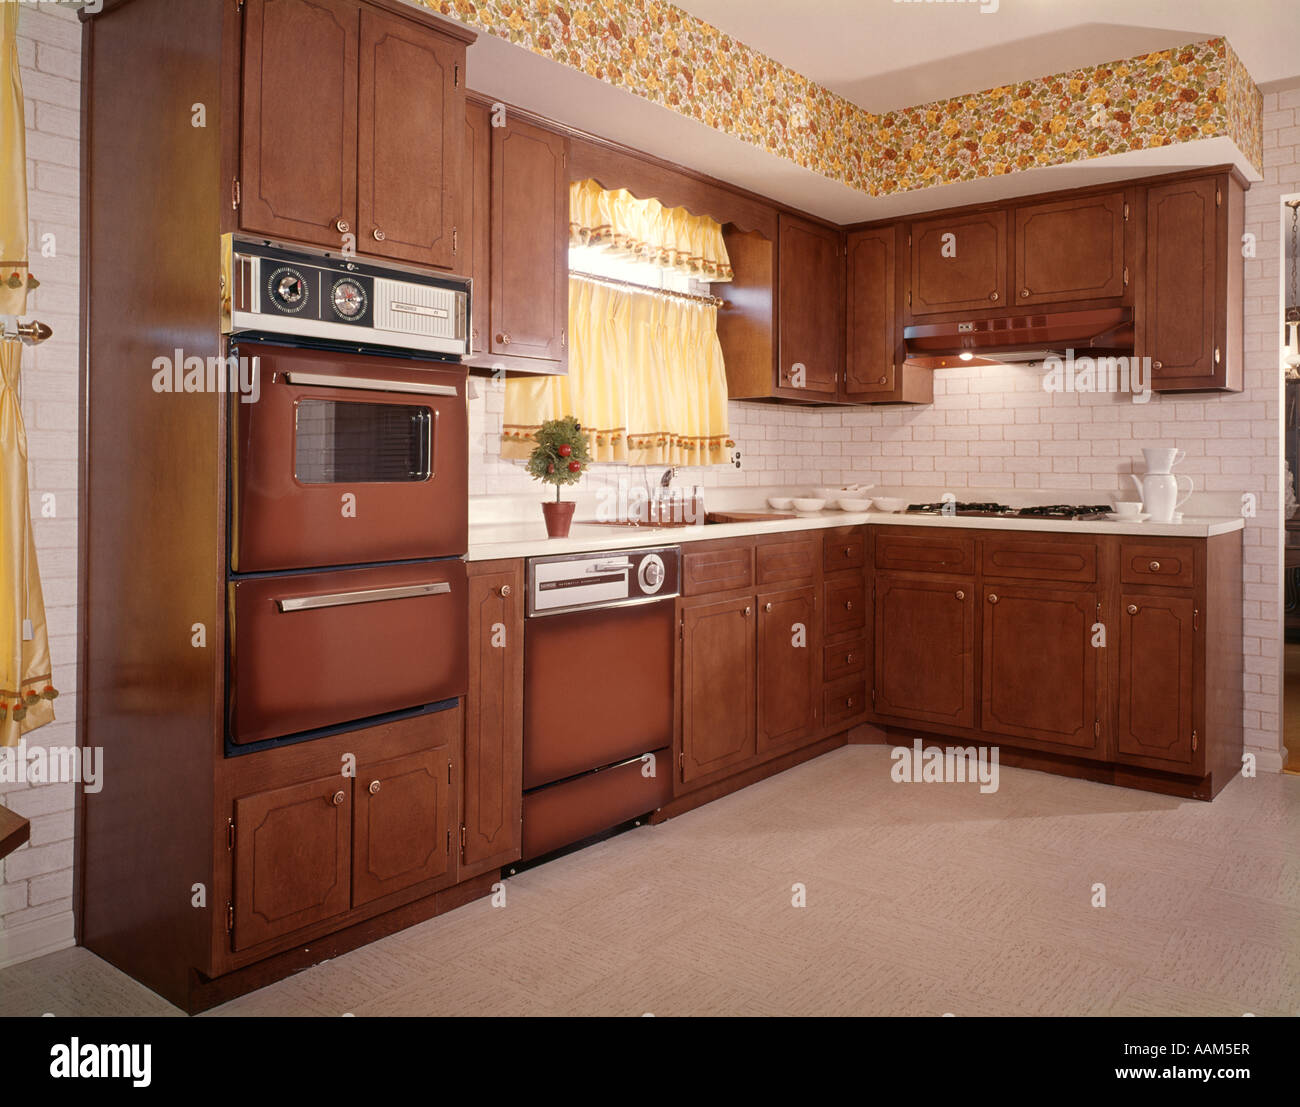 1970s KITCHEN BROWN CABINETS YELLOW CURTAINS Stock Photo ...